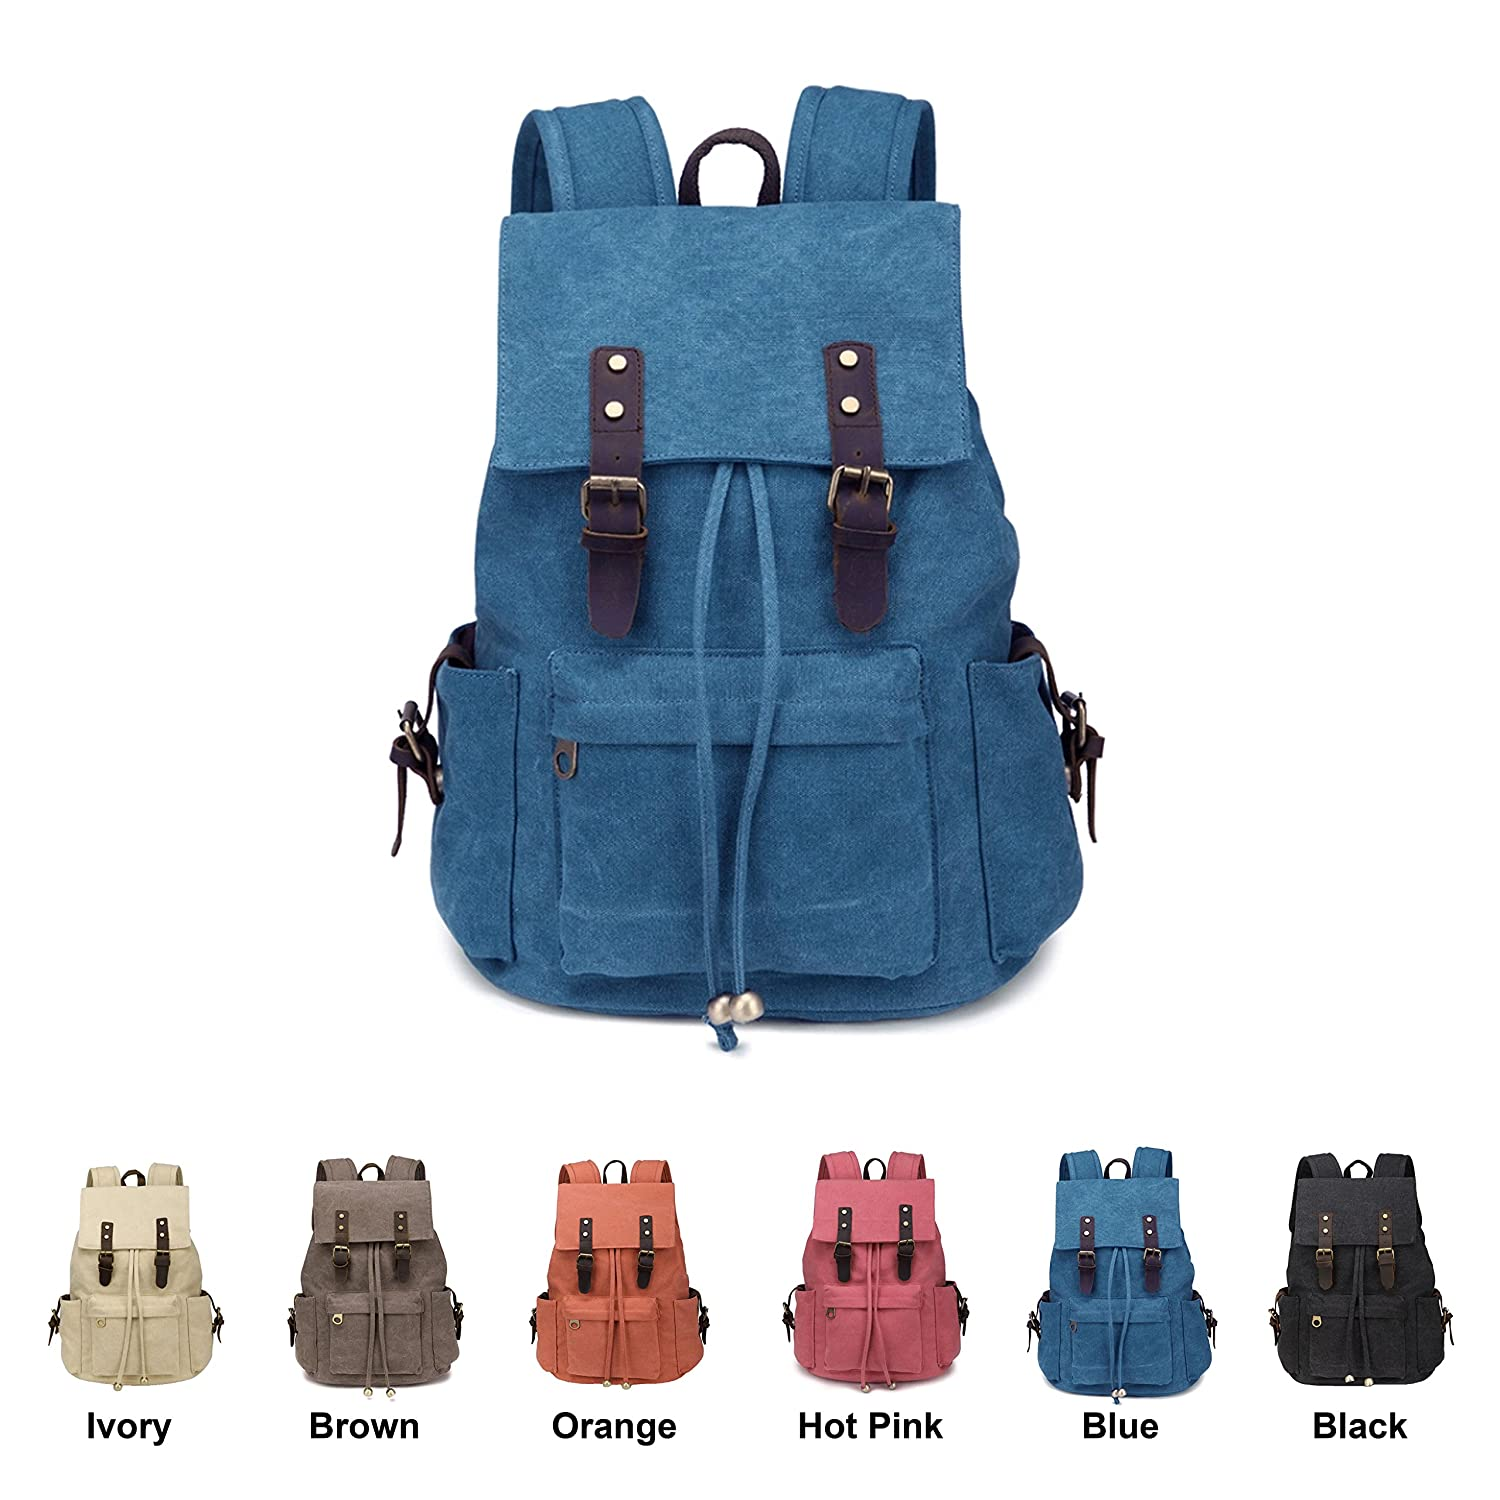 5ed56a5bc581 Amazon.com  Queenie - Canvas Causal Daypack Laptop Backpack College Campus School  Bags for Teens Unisex Boys Girls (A005 Grey)  Computers   Accessories